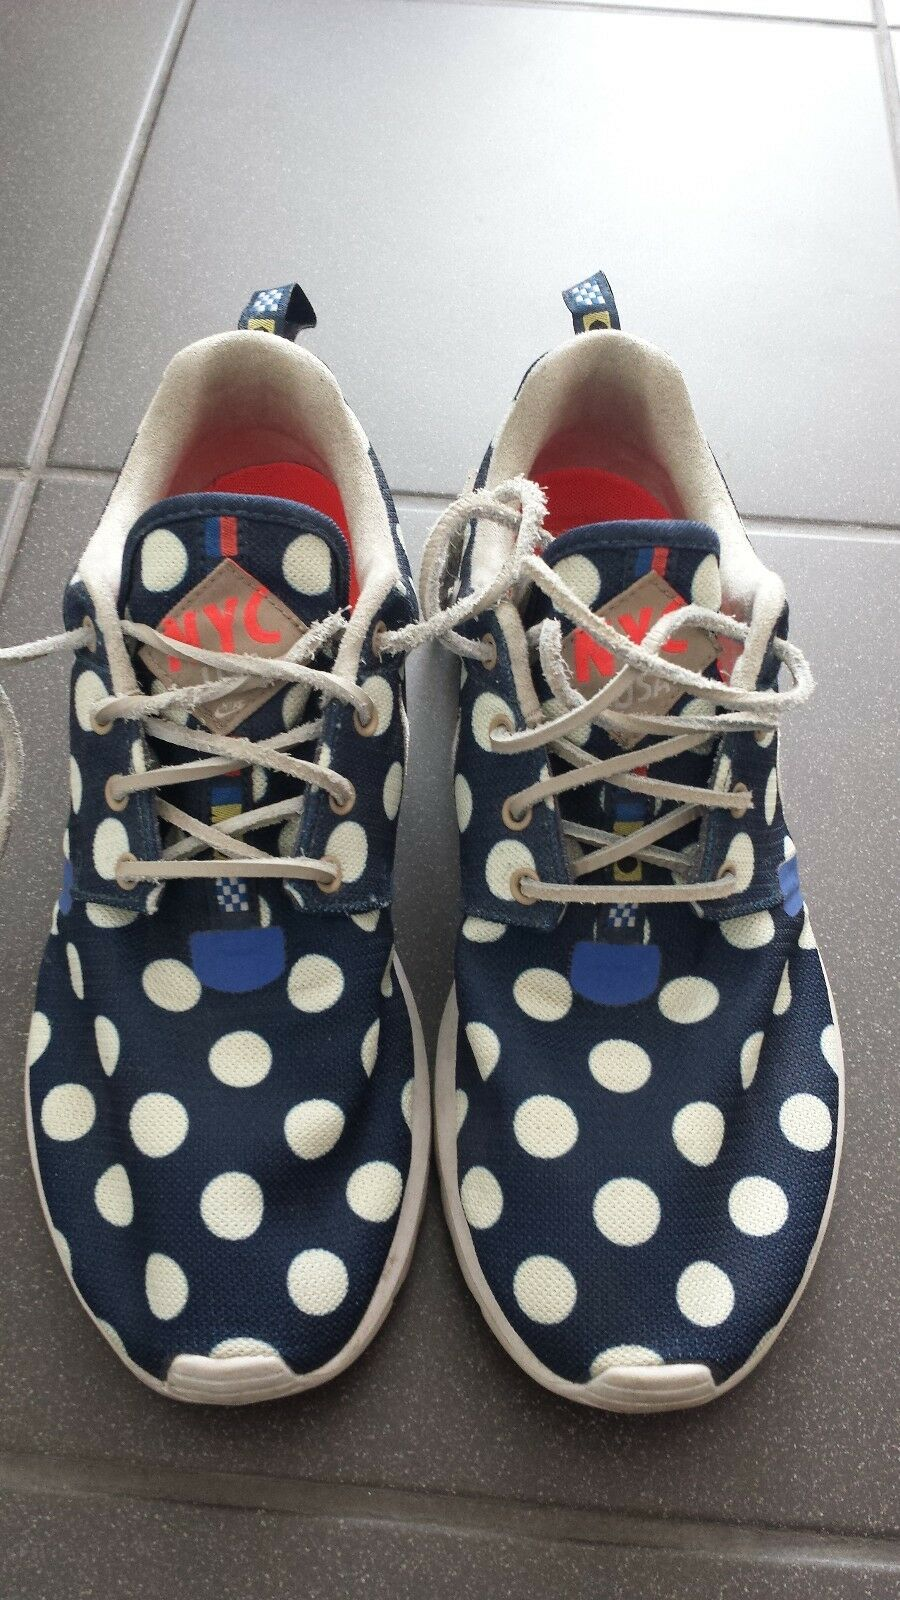 Nike Roshe Run NYC NYC NYC City Pack Dead Stock Punkte Dots Limited Edition Gr 39 US 6,5 63b69f